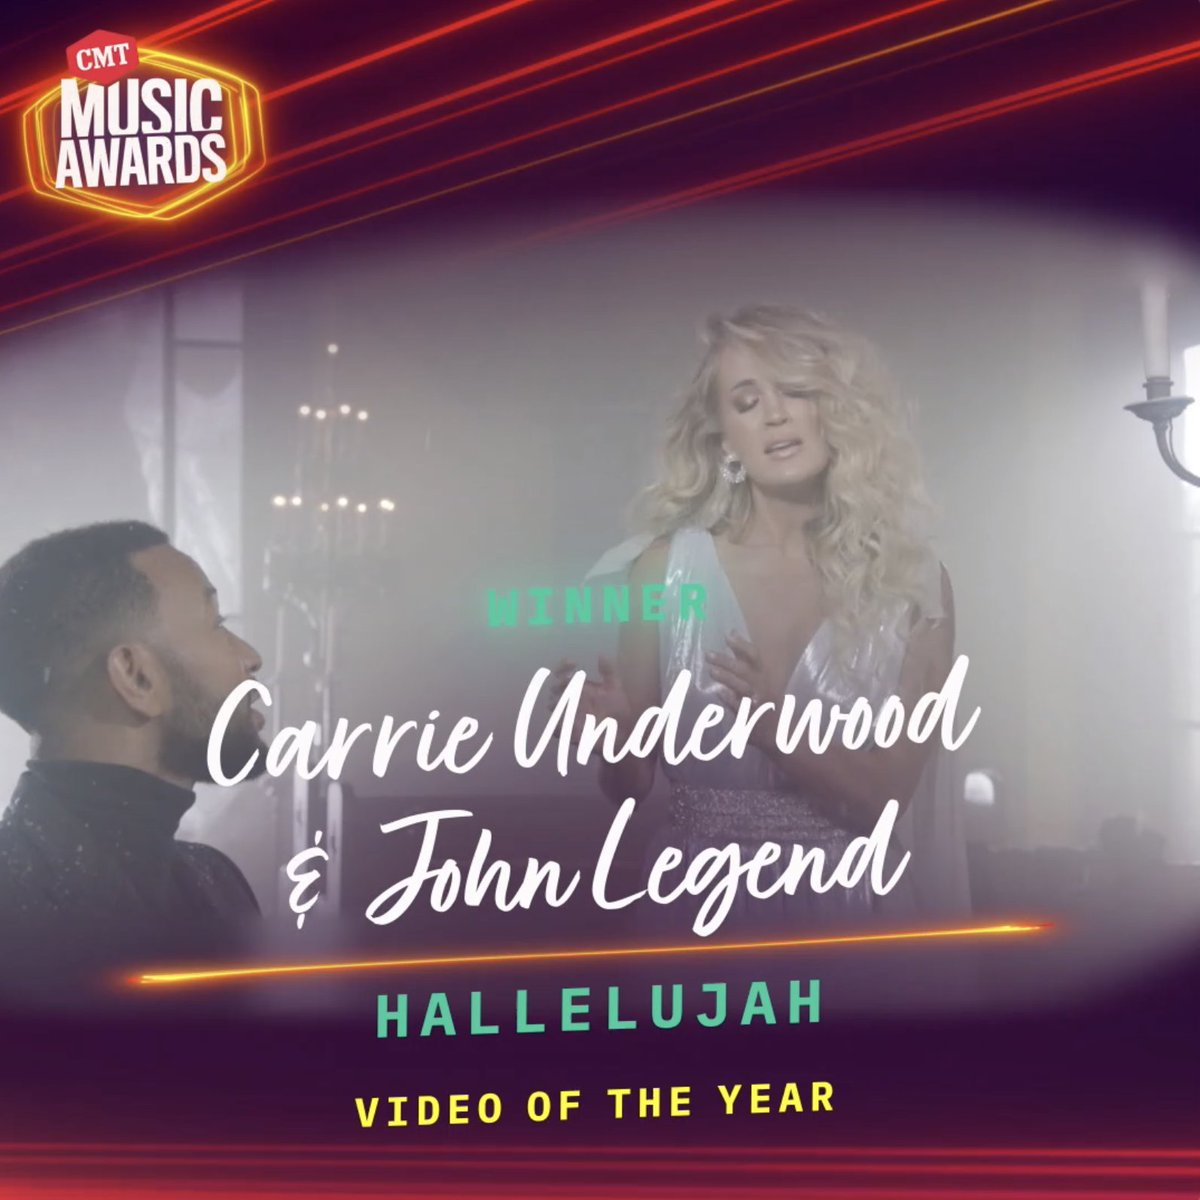 """VIDEO OF THE YEAR goes to @carrieunderwood and @johnlegend for """"Hallelujah"""" #CMTAwards 📹 https://t.co/1eig4JDRQY"""